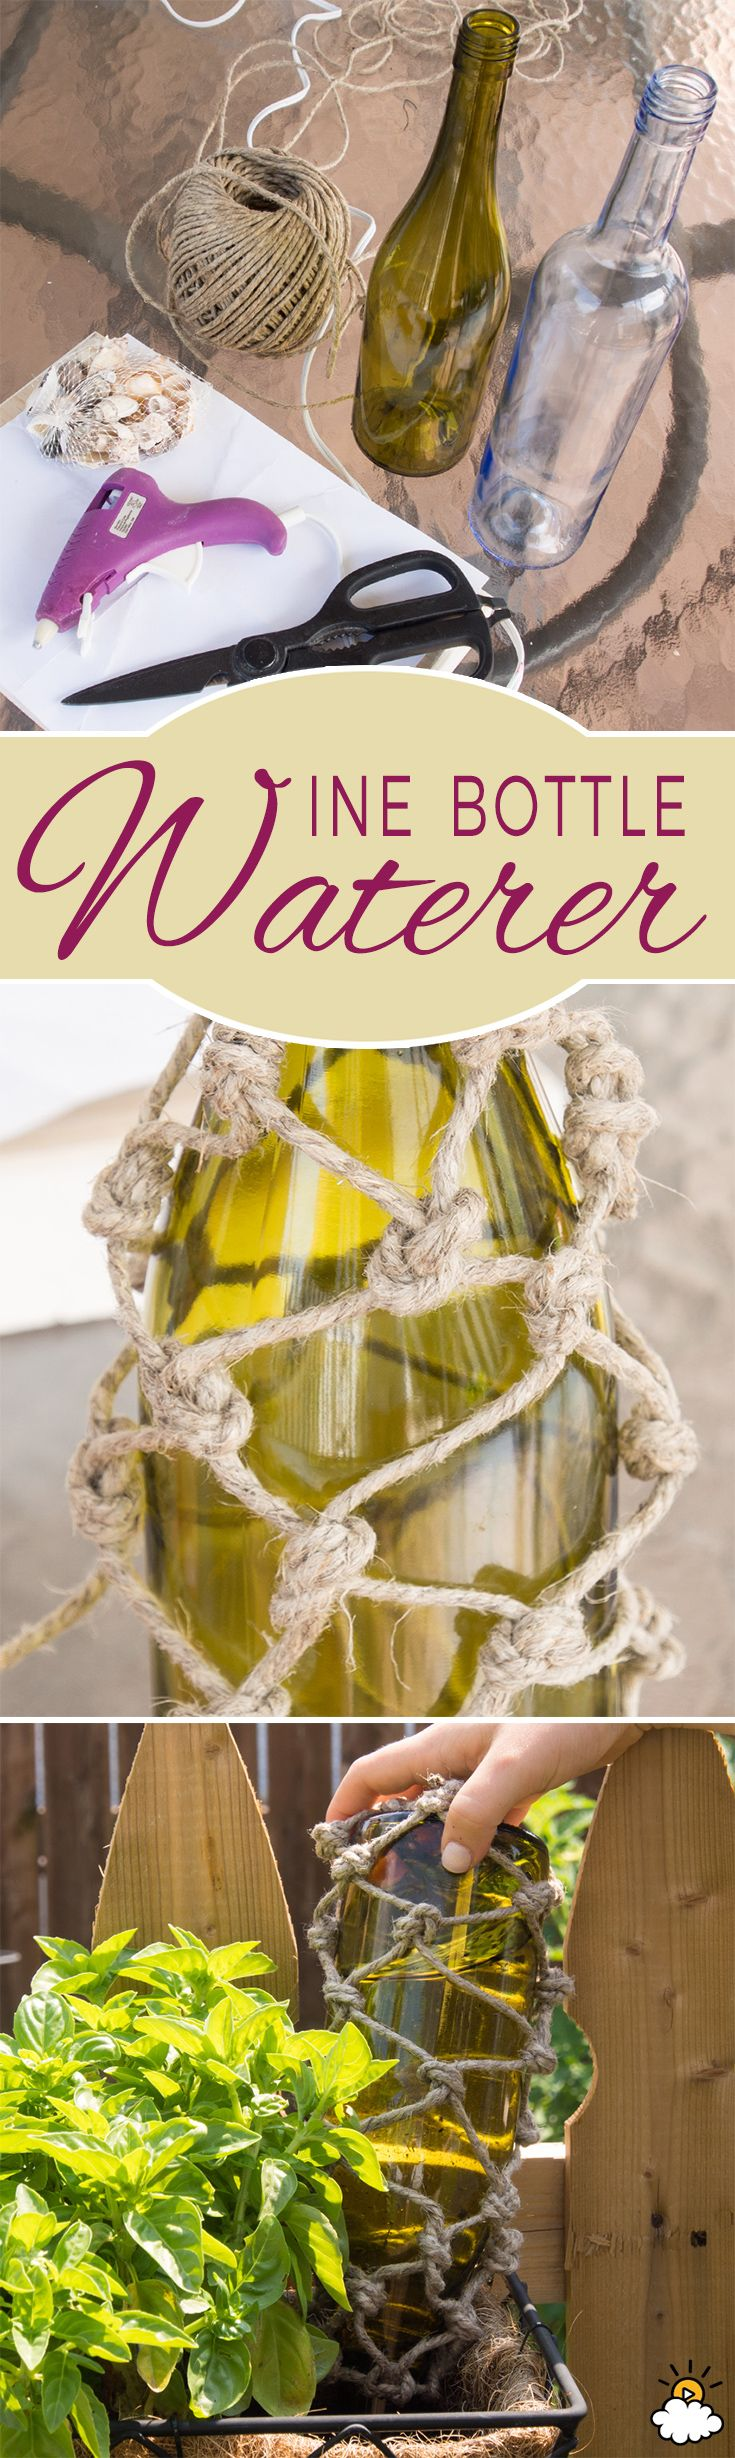 Old Wine Bottles Become Plant Water Feeders With This Clever Tutorial via LittleThings.com